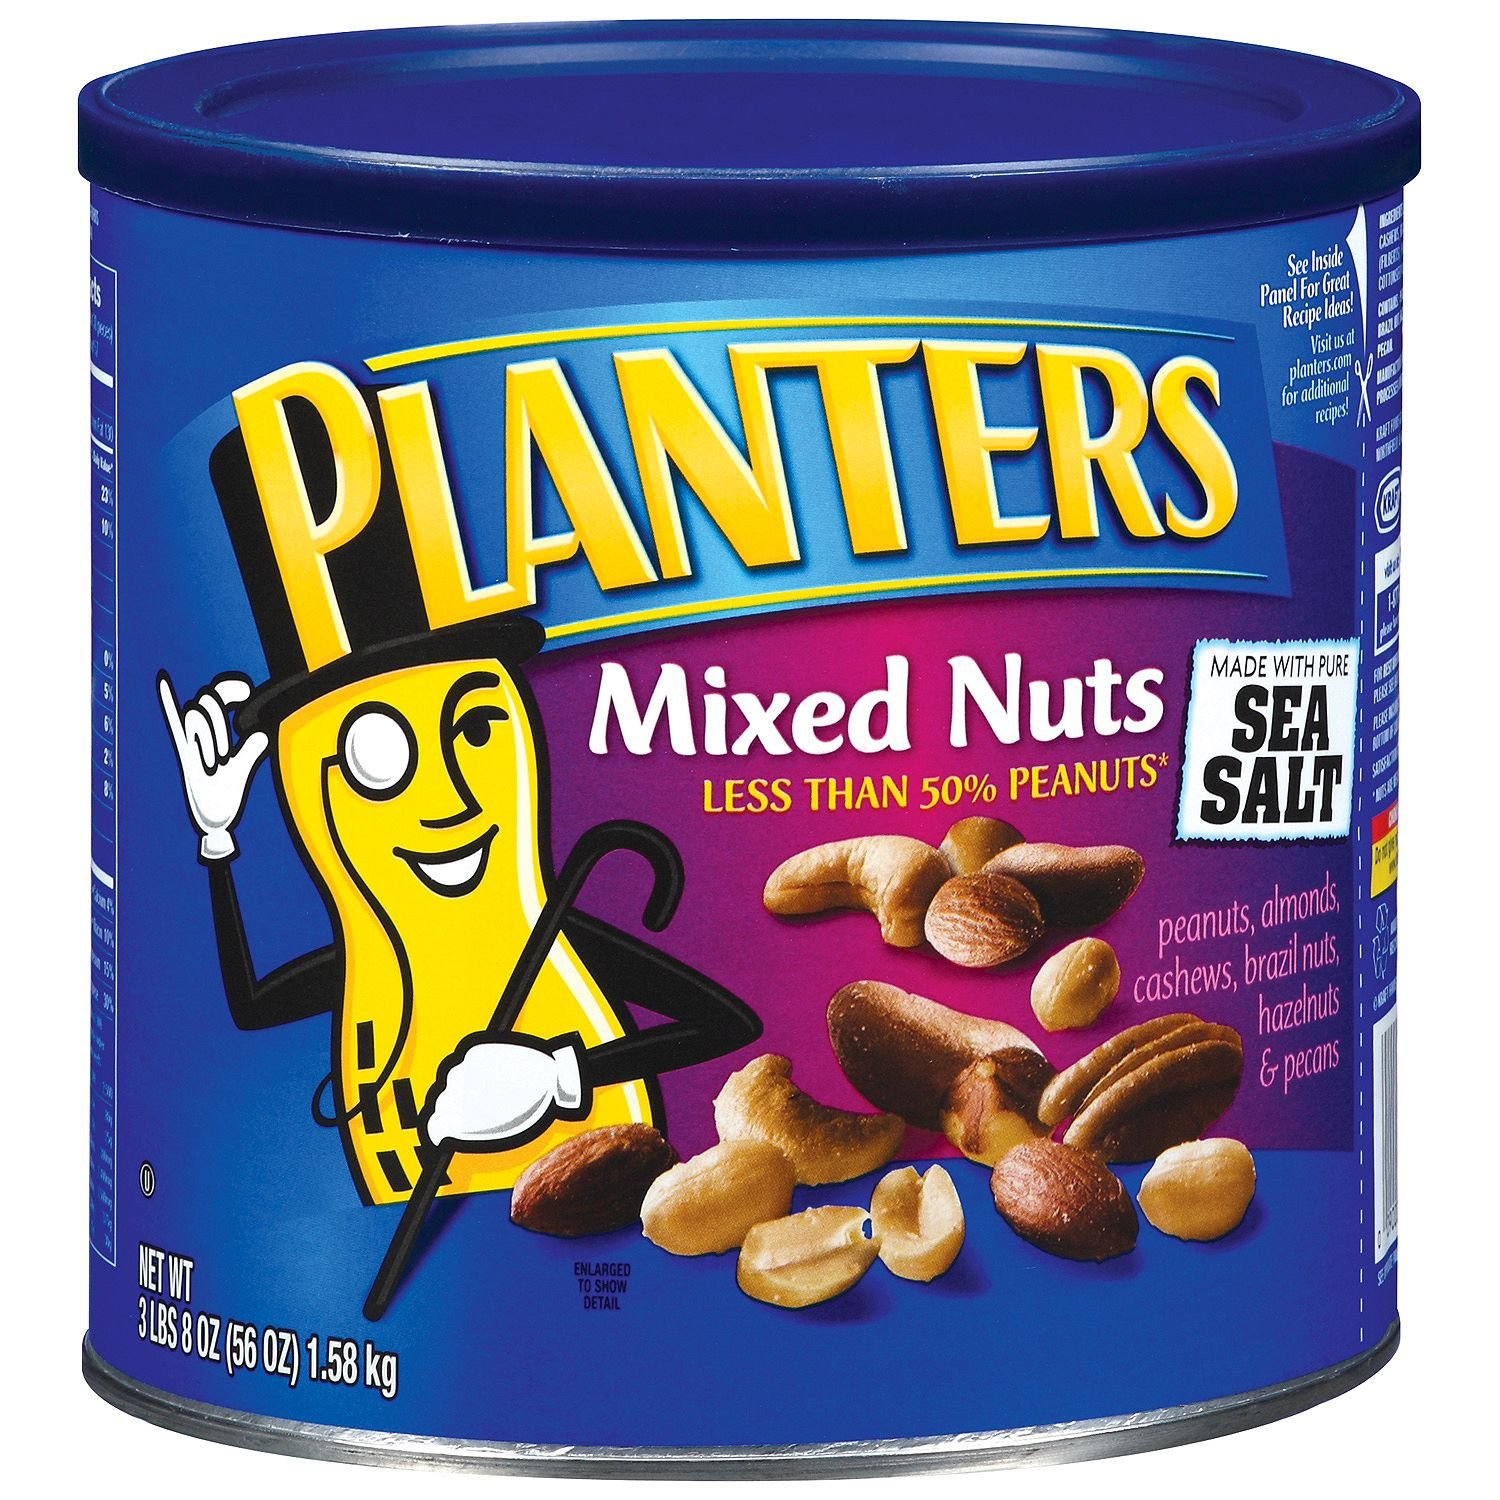 Planters Mixed Nuts with Sea Salt (56 oz.) (pack of 6)